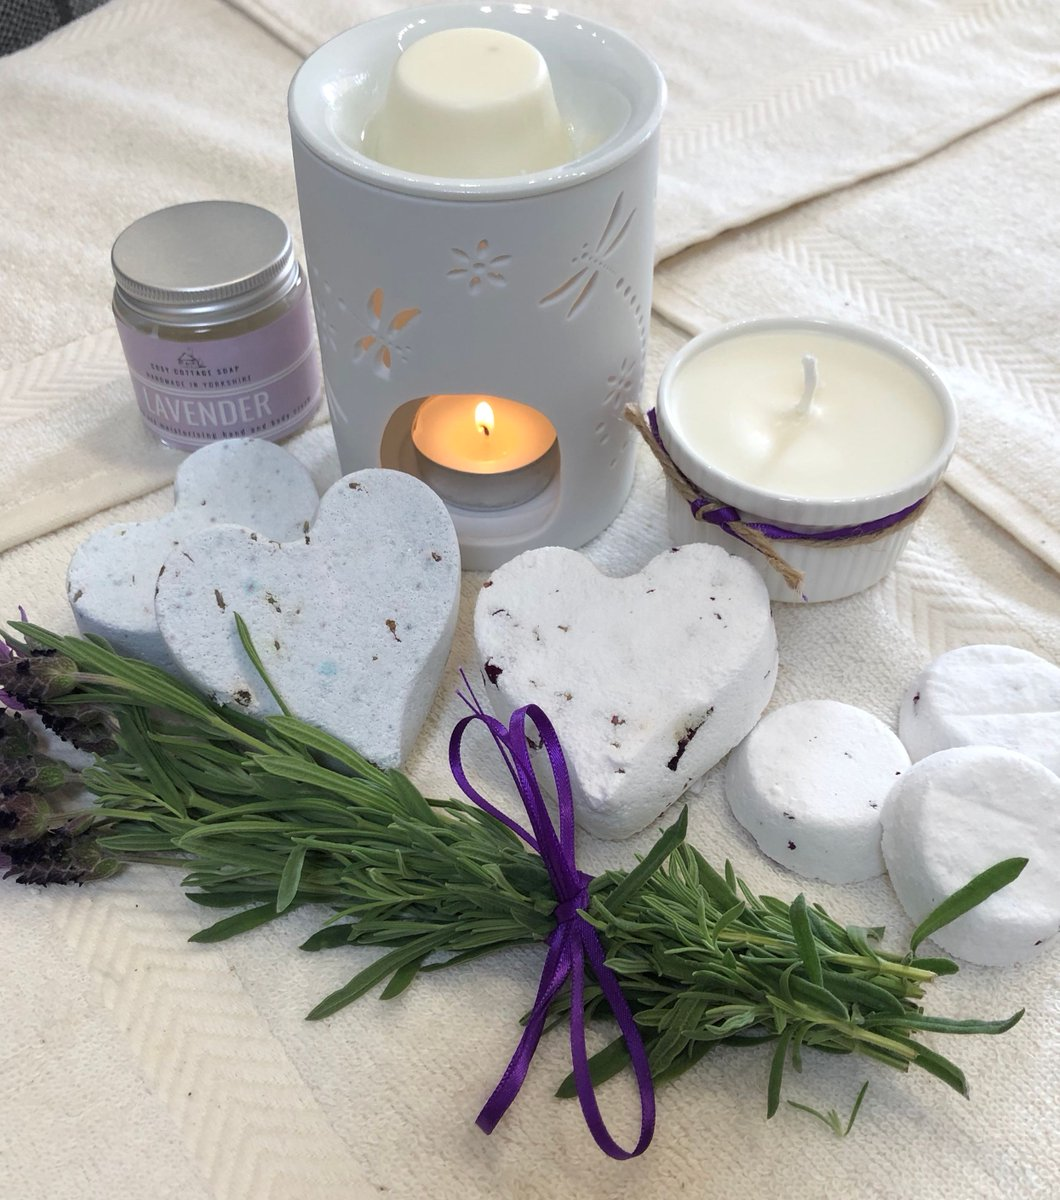 Go on. Treat yourself! We might not be able to make it to a spa but we can relax & create tranquil spaces at home. Our plastic and palm oil-free bath bombs are back & available in Geranium and Lavender.#cosycottagesoap #soap #handmadesoap #palmoilfree #plasticfree #crueltyfreepic.twitter.com/hoT9m0jzSa